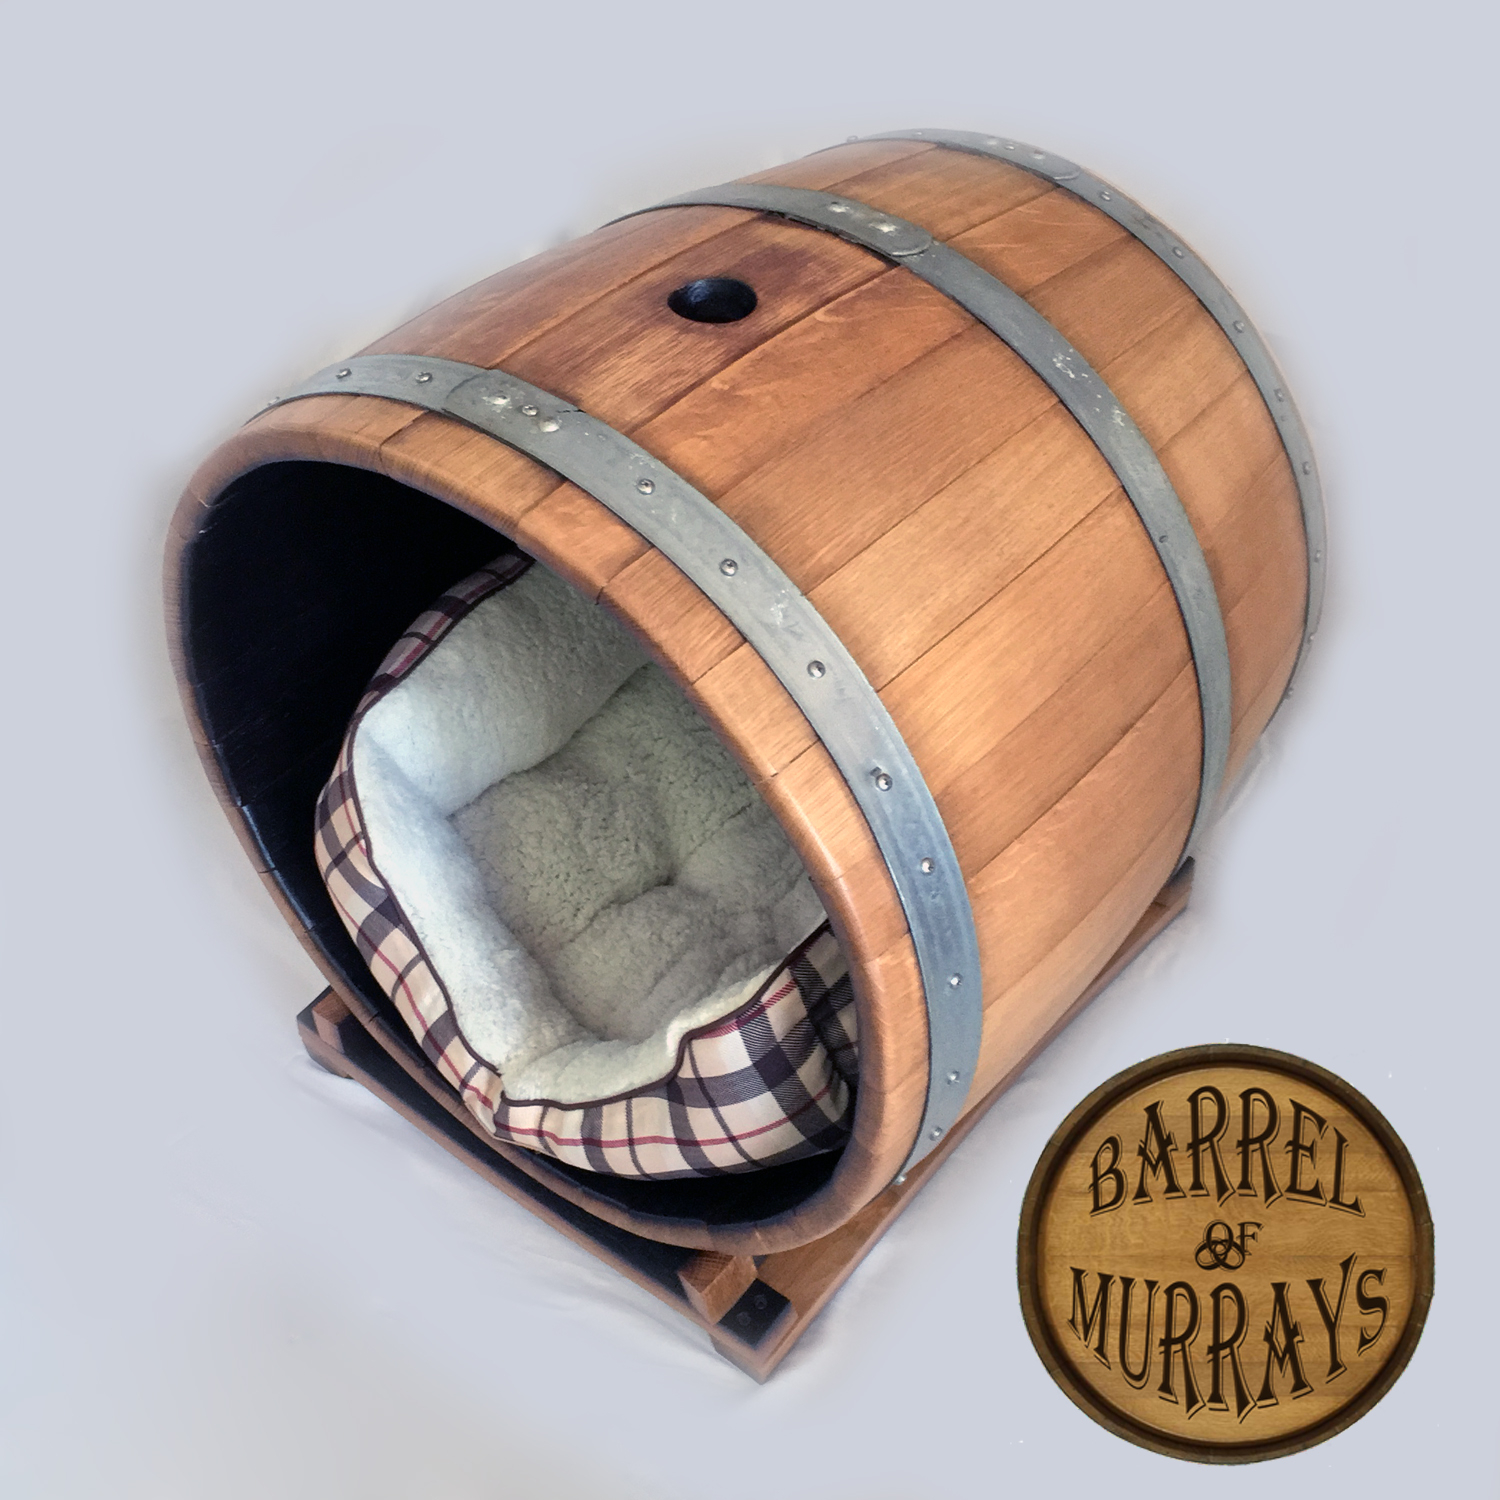 Lilly S Bed Full Barrel Beds Barrel Of Murrays